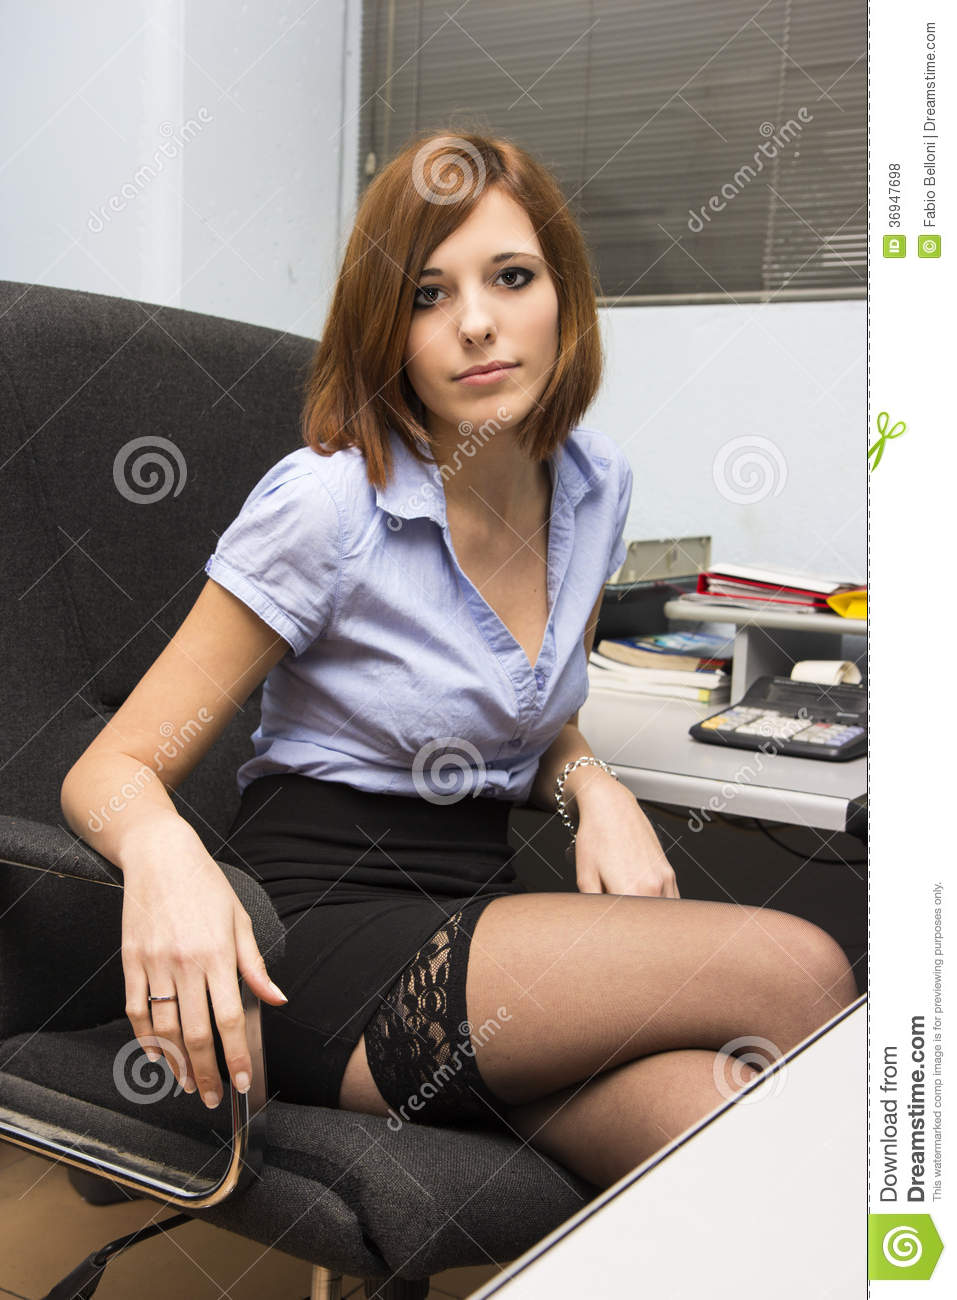 Pictures of sexy secretaries